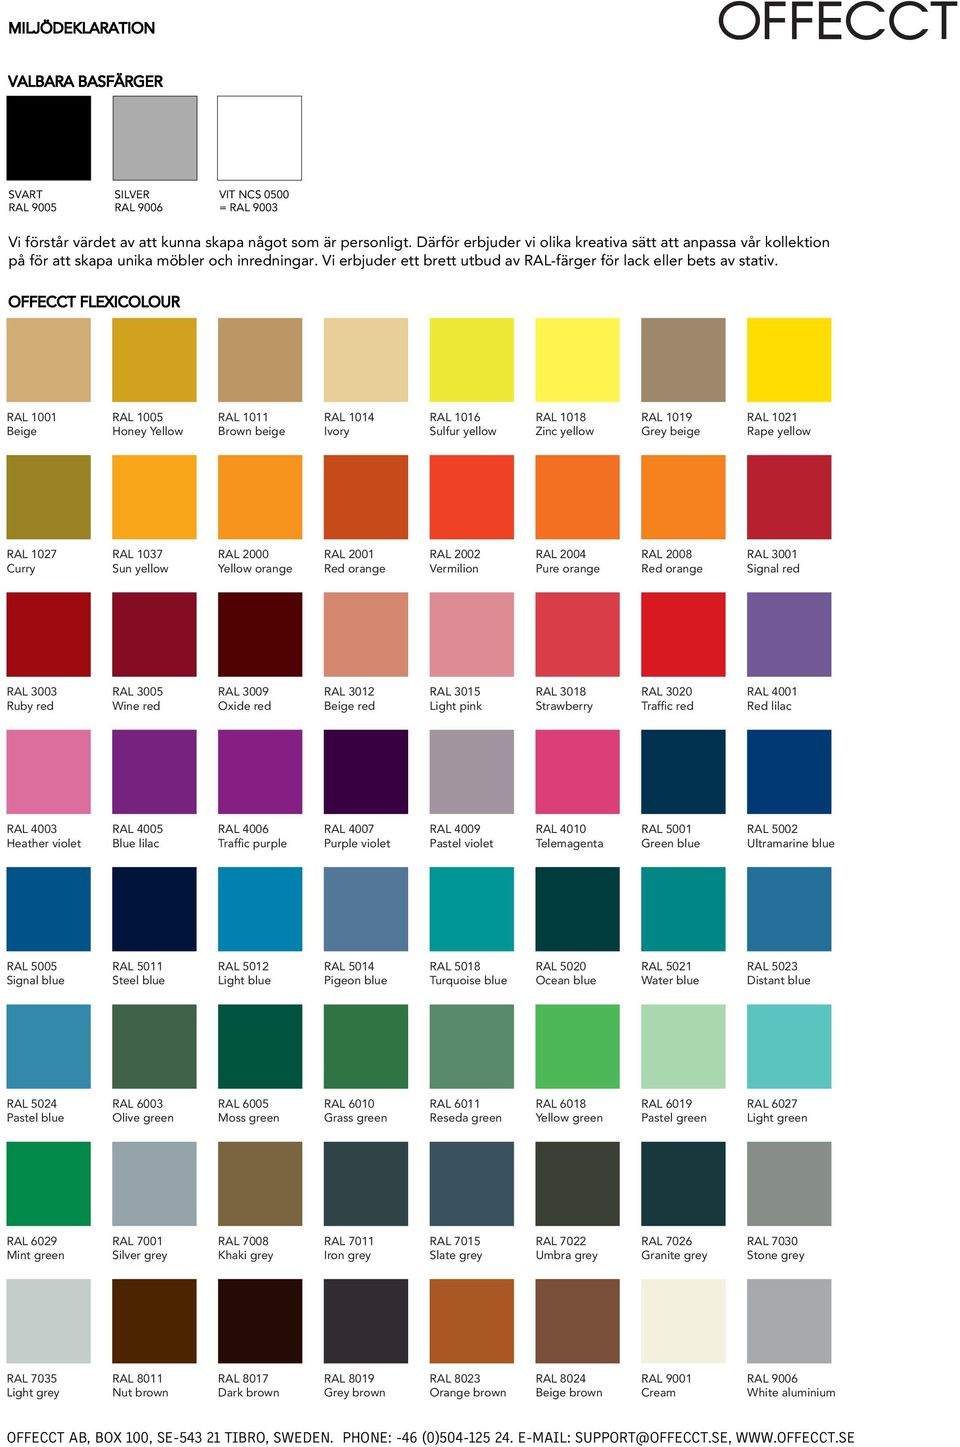 OFFECCT FLEXICOLOUR RAL 1001 Beige RAL 1005 Honey Yellow RAL 1011 Brown beige RAL 1014 Ivory RAL 1016 Sulfur yellow RAL 1018 Zinc yellow RAL 1019 Grey beige RAL 1021 Rape yellow RAL 1027 Curry RAL